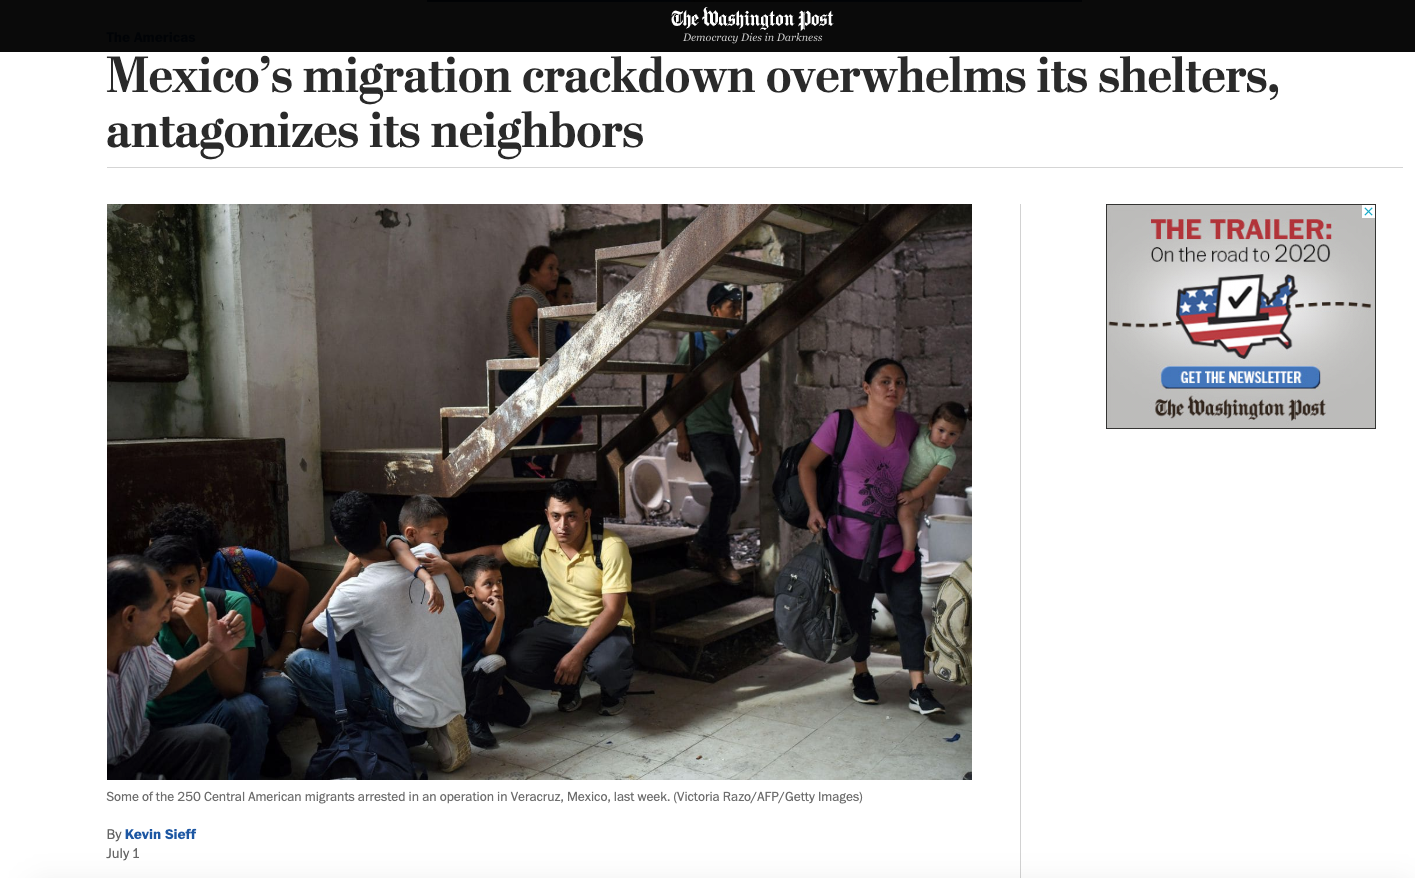  https://www.washingtonpost.com/world/the_americas/mexicos-migration-crackdown-overwhelms-its-shelters-and-antagonizes-its-neighbors/2019/07/01/cedde2b8-99c4-11e9-9a16-dc551ea5a43b_story.html 